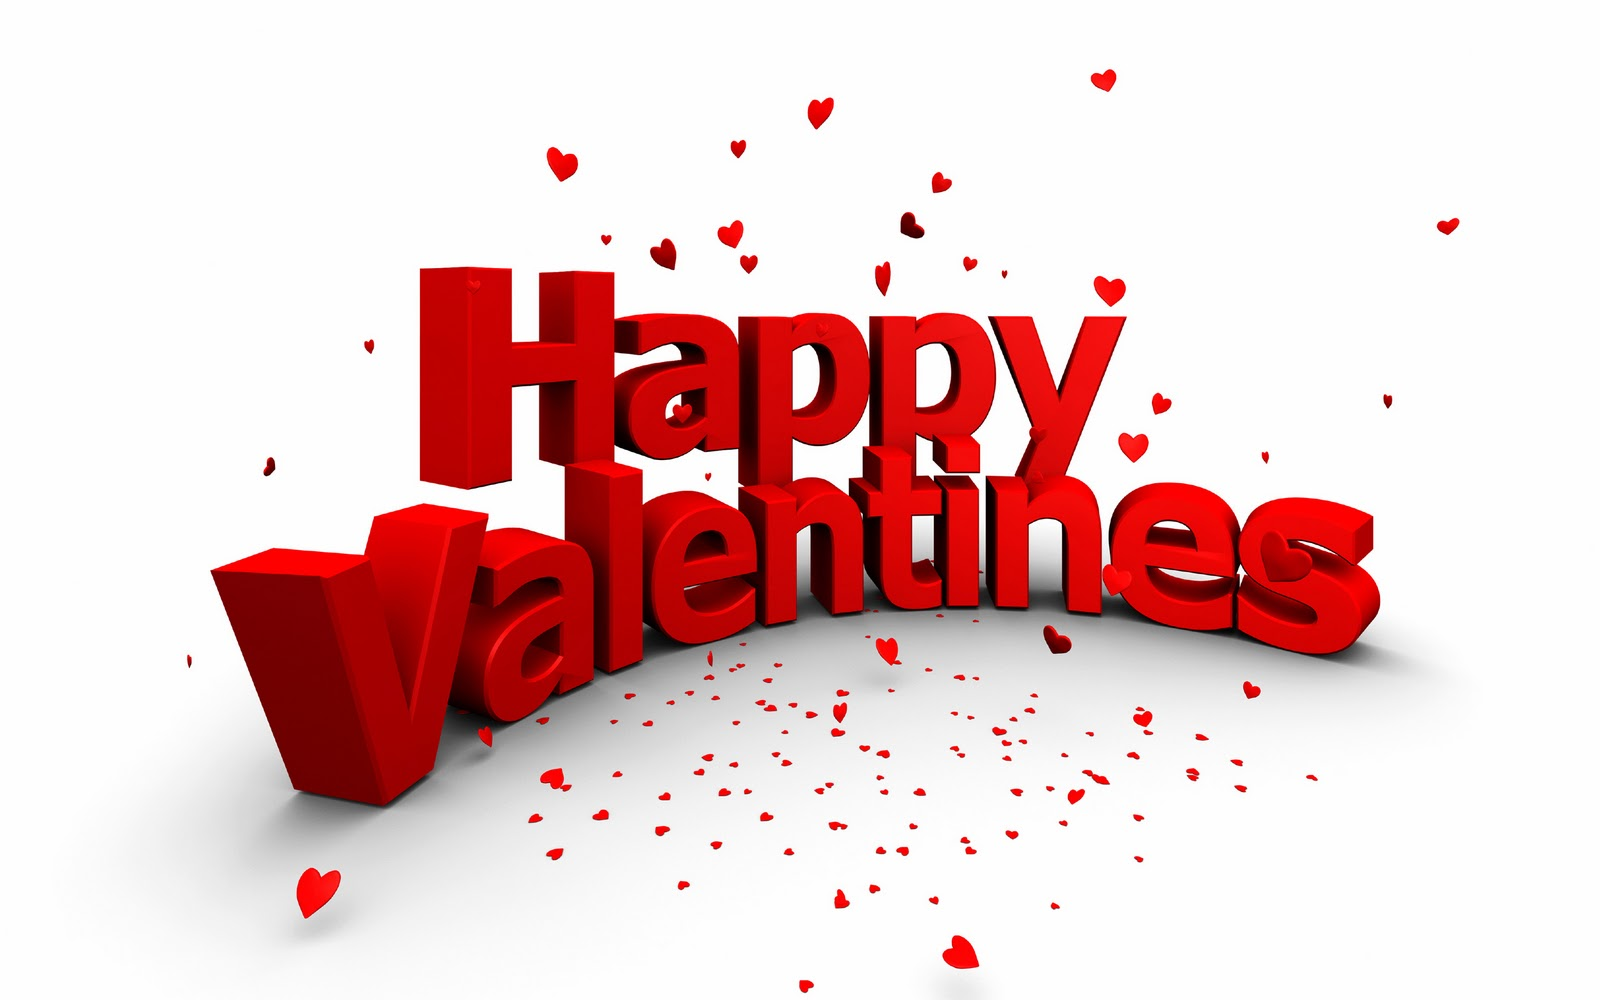 happy valentine valentines wallpapers greetings cards wishes desktop flowers greeting messages wish 3d bing message cute heart funny gifs